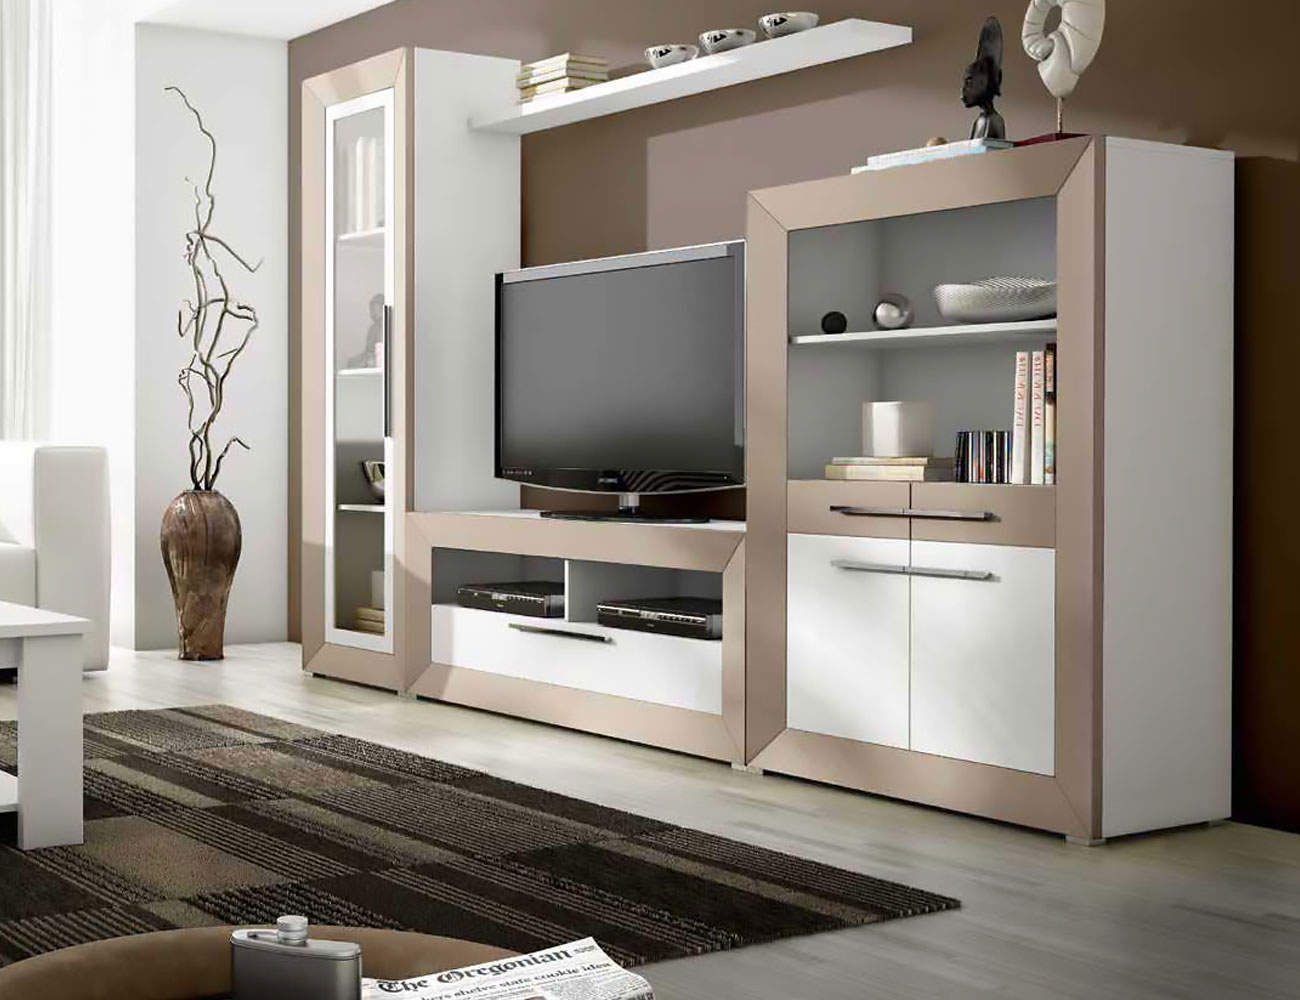 Mueble de sal n moderno en blanco con vis n 2400 for Decorar mueble de salon moderno